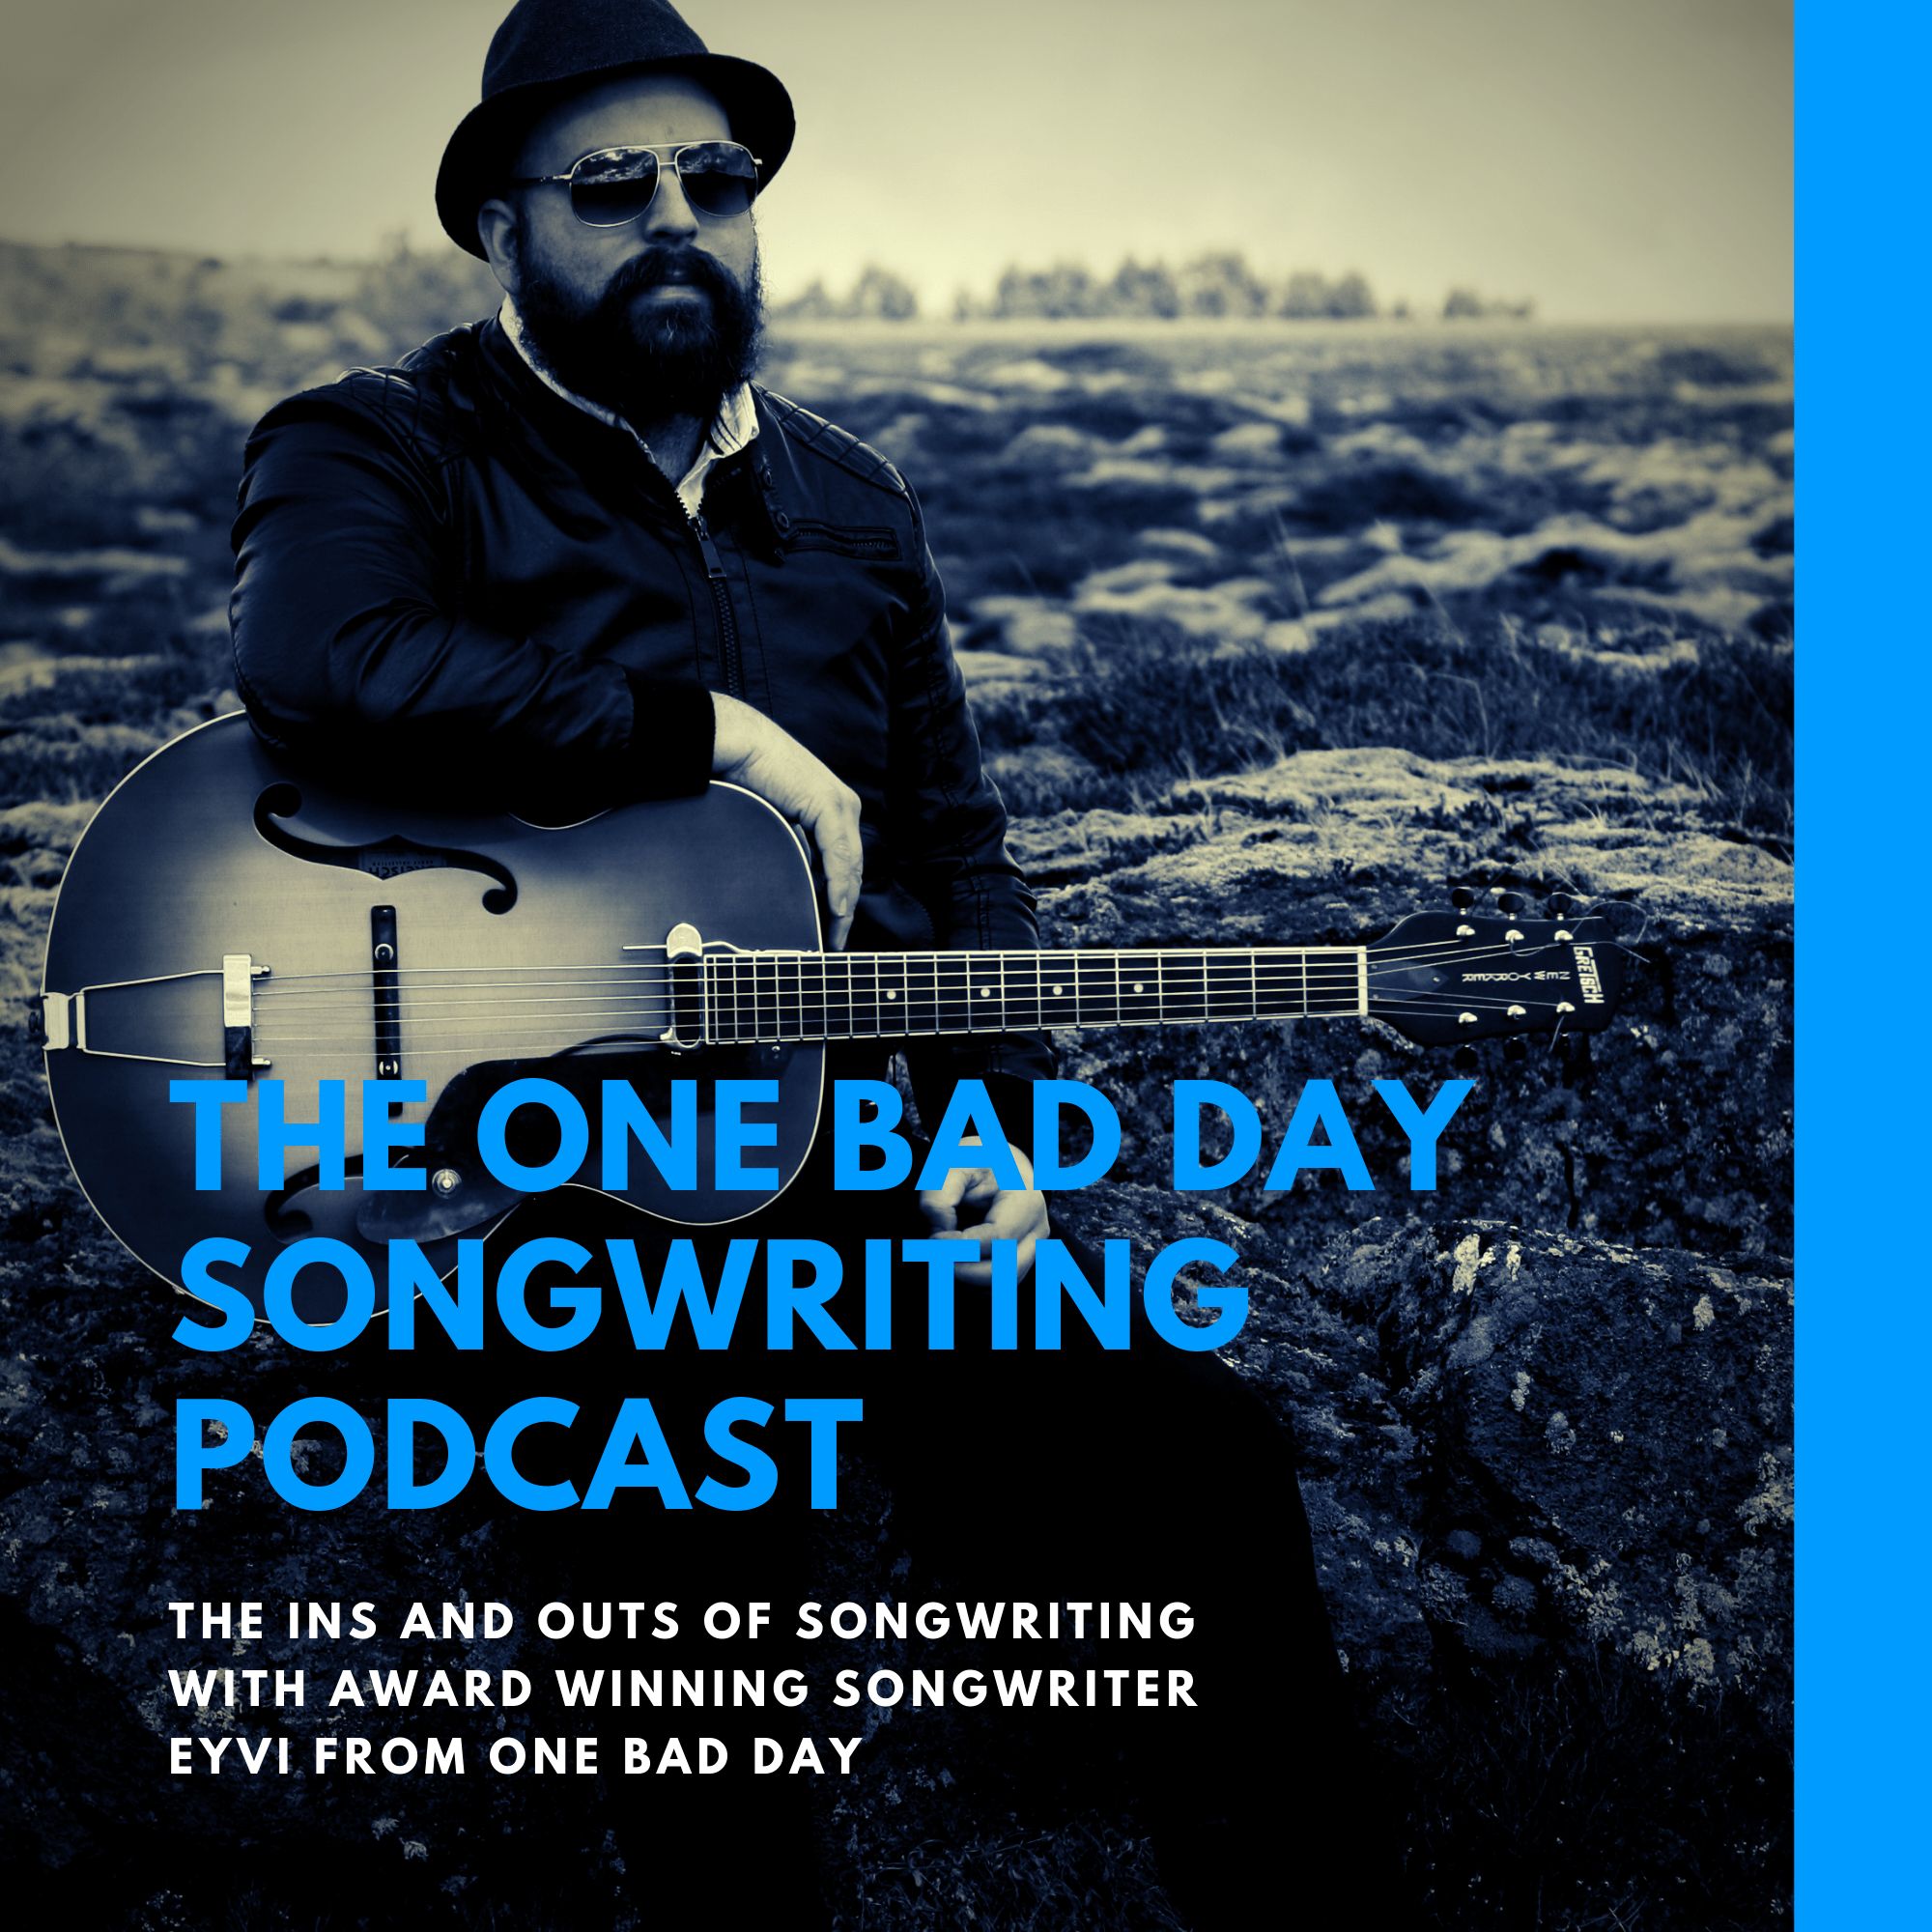 The One Bad Day Songwriting Podcast